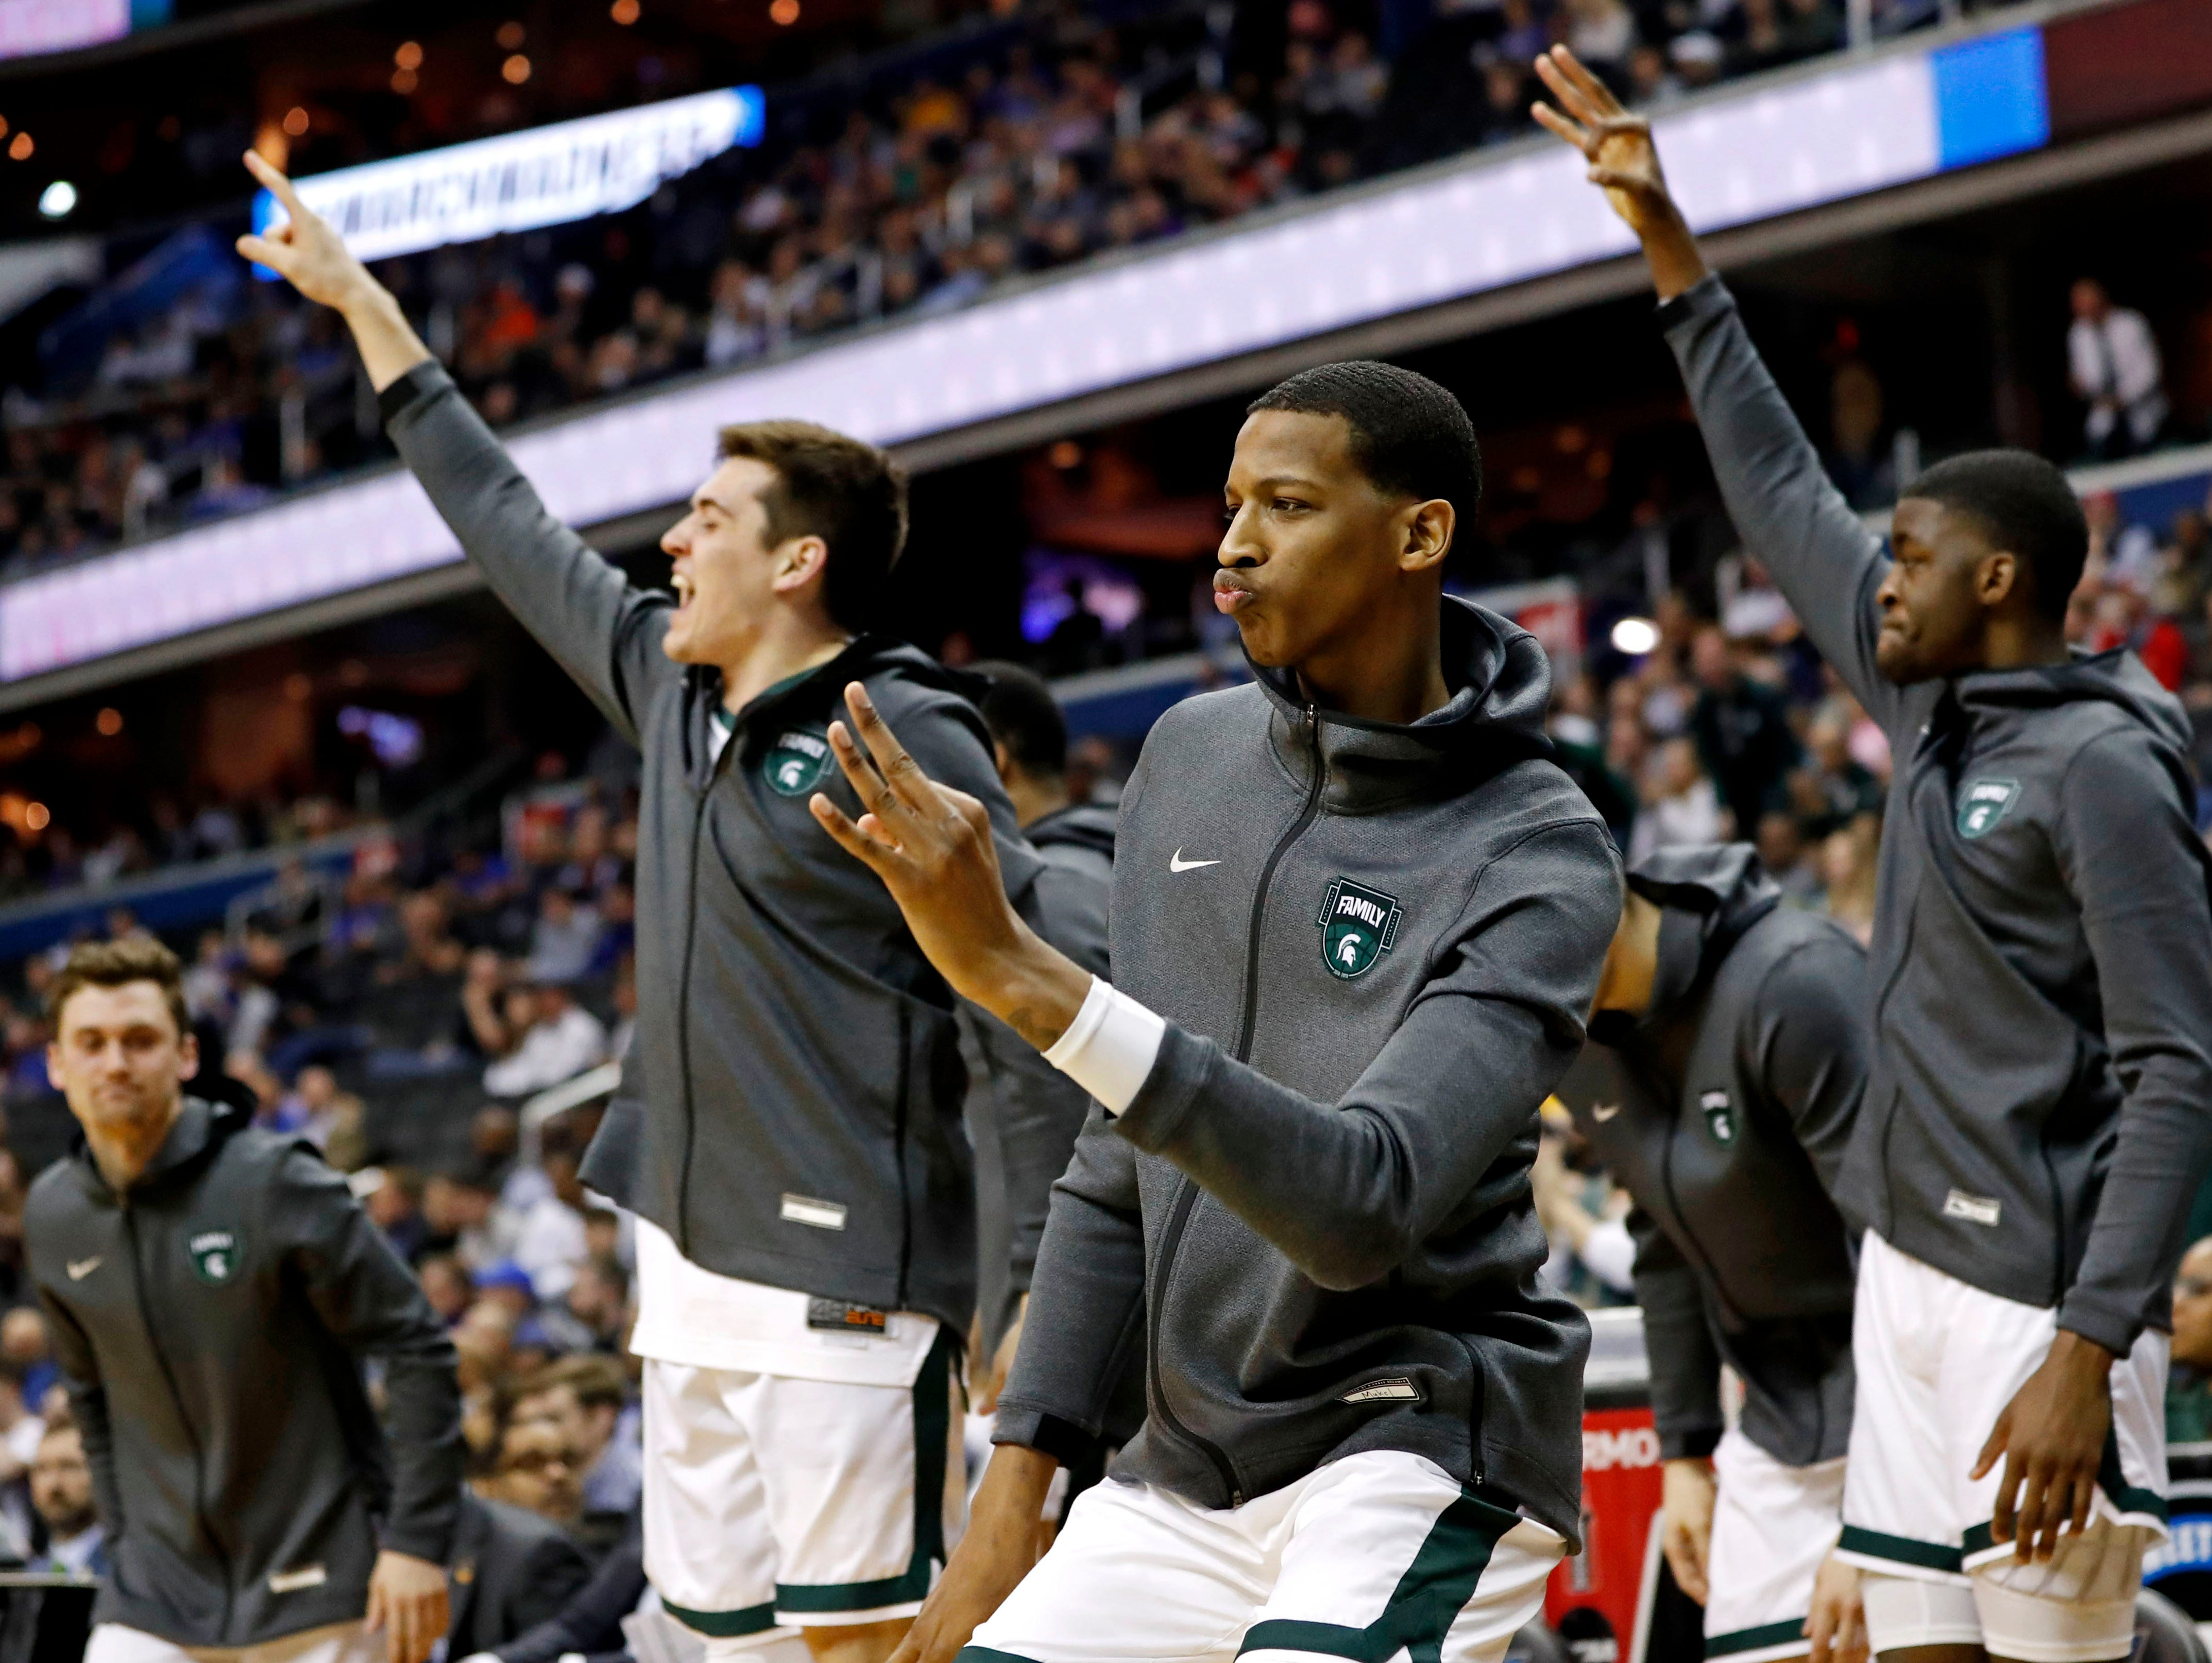 Mar 29, 2019; Washington, DC, USA; The Michigan State Spartans bench celebrates during the first half against the LSU Tigers in the semifinals of the east regional of the 2019 NCAA Tournament at Capital One Arena. Mandatory Credit: Geoff Burke-USA TODAY Sports